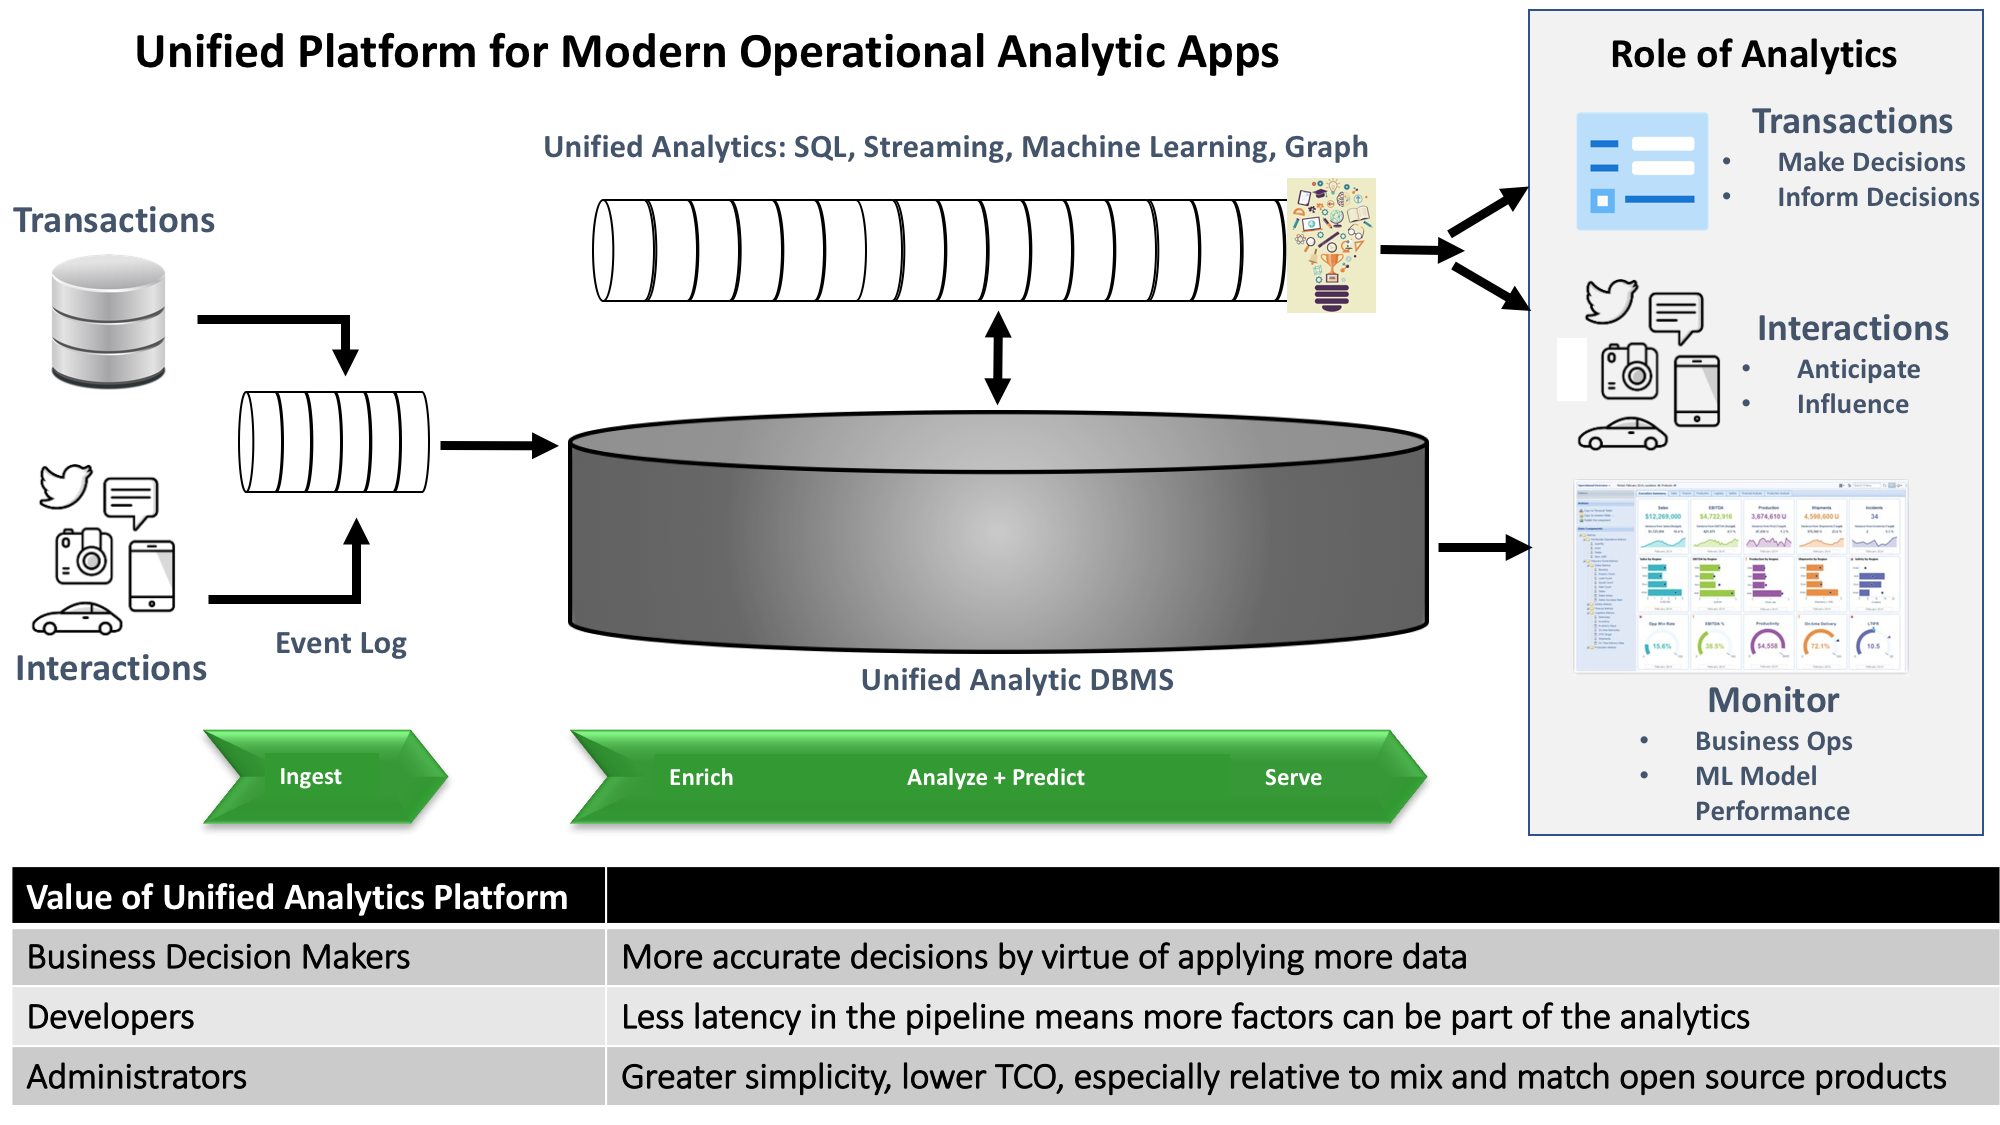 Figure 2: Unified platforms for modern operational analytics applications remove the mix-and-match burden on developers and administrators.